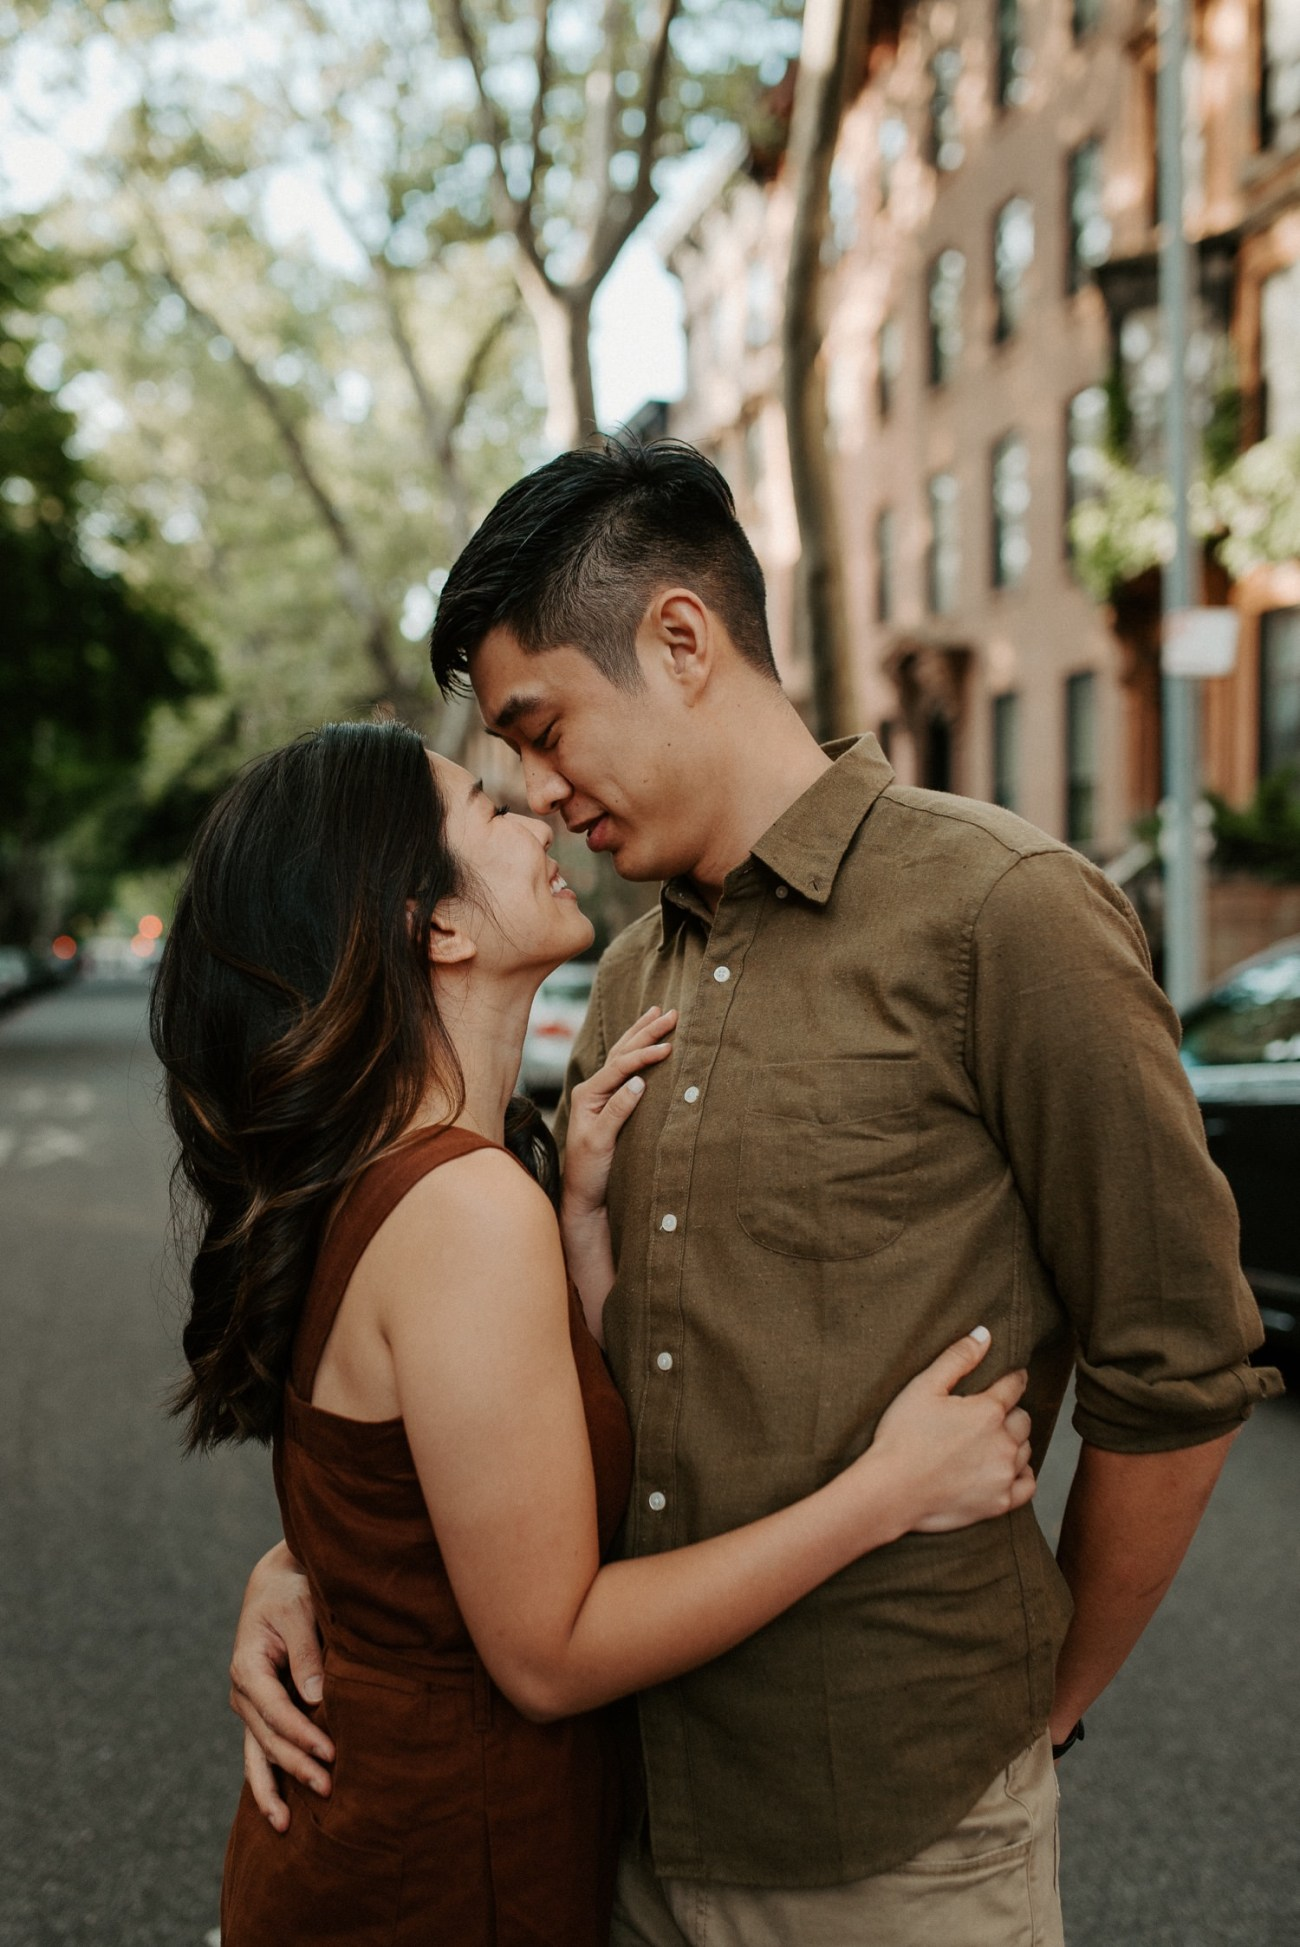 Fort Greene Brooklyn Engagement Session Brooklyn Wedding Photographer New York Wedding Photographer Anais Possamai Photography 005